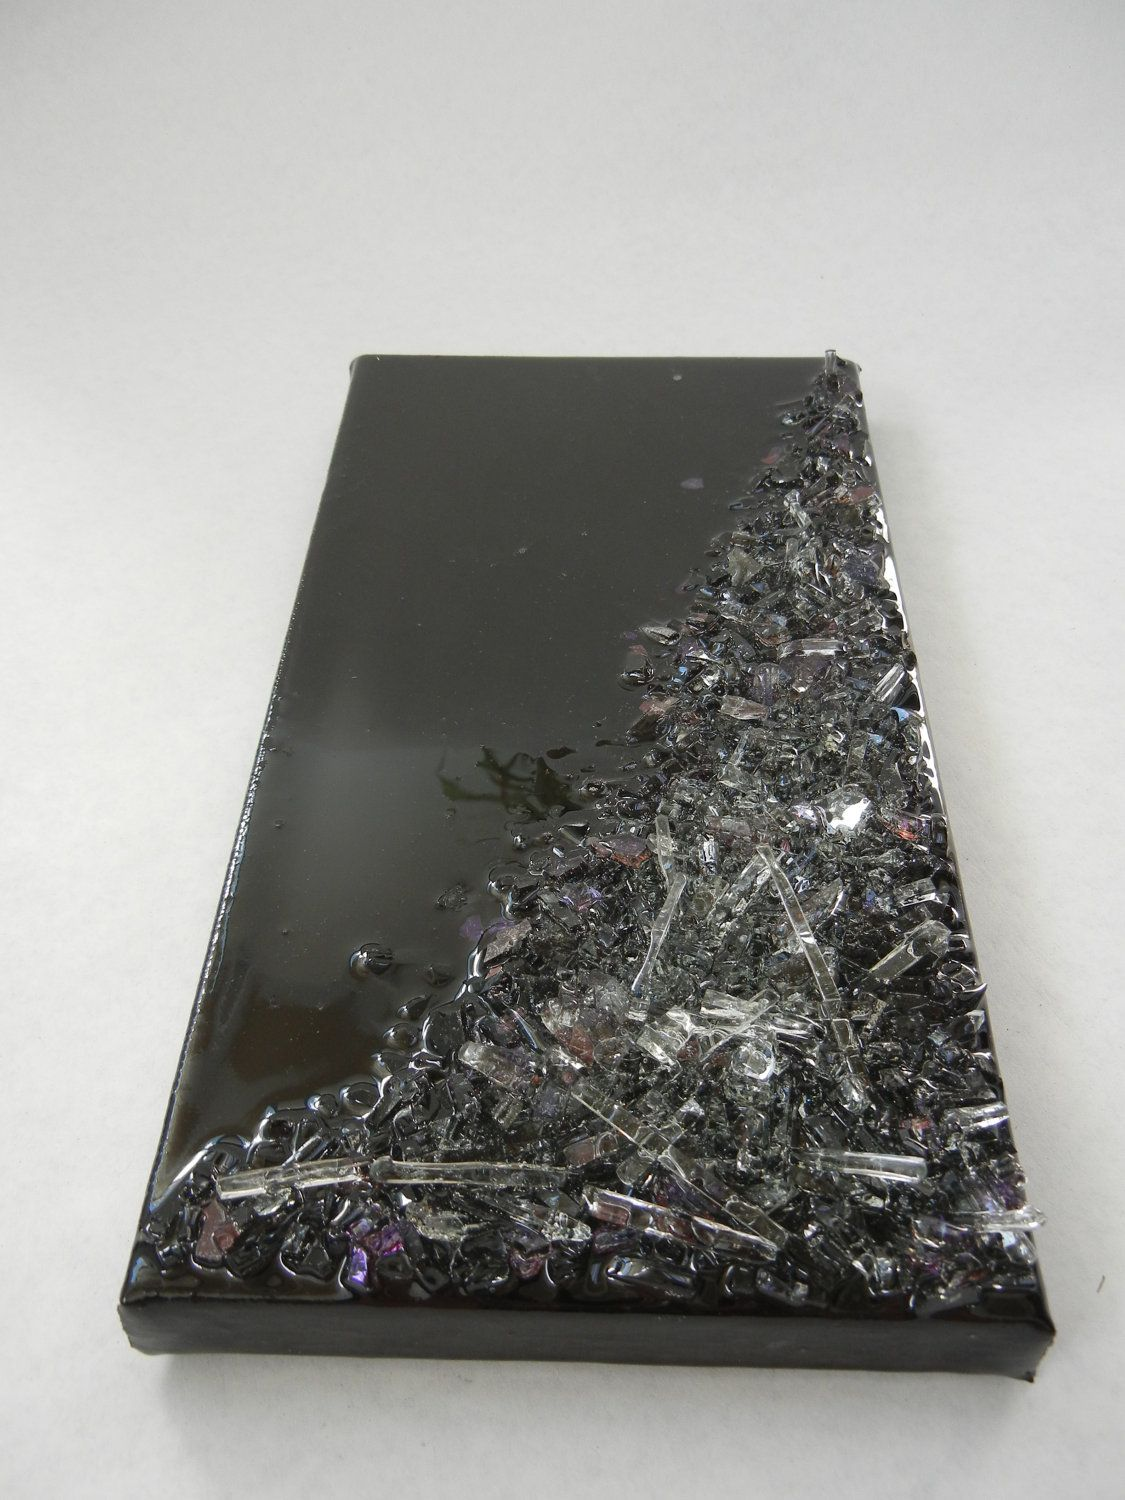 Recycled Glass Resin Wall Art - via Etsy. | crafts:D ... - photo#31